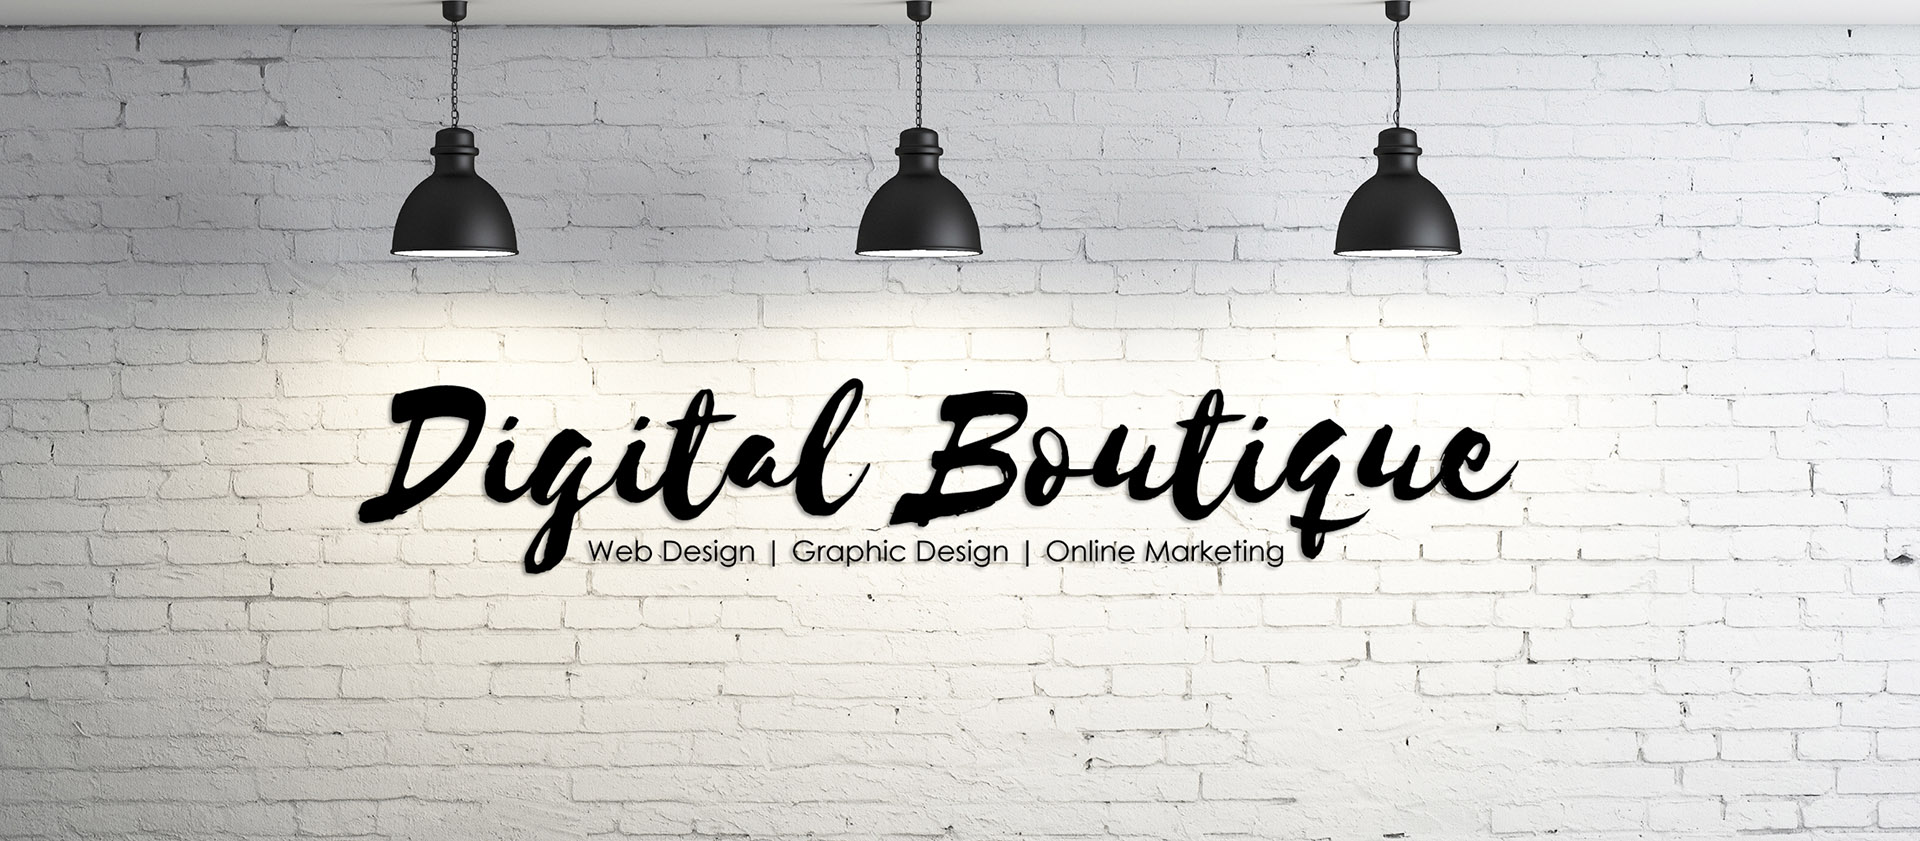 Cape-Town-Digital-Agency-Creative-Imagineering-Digital-Boutique-Web-Design-Graphic-Design-Online-Marketing